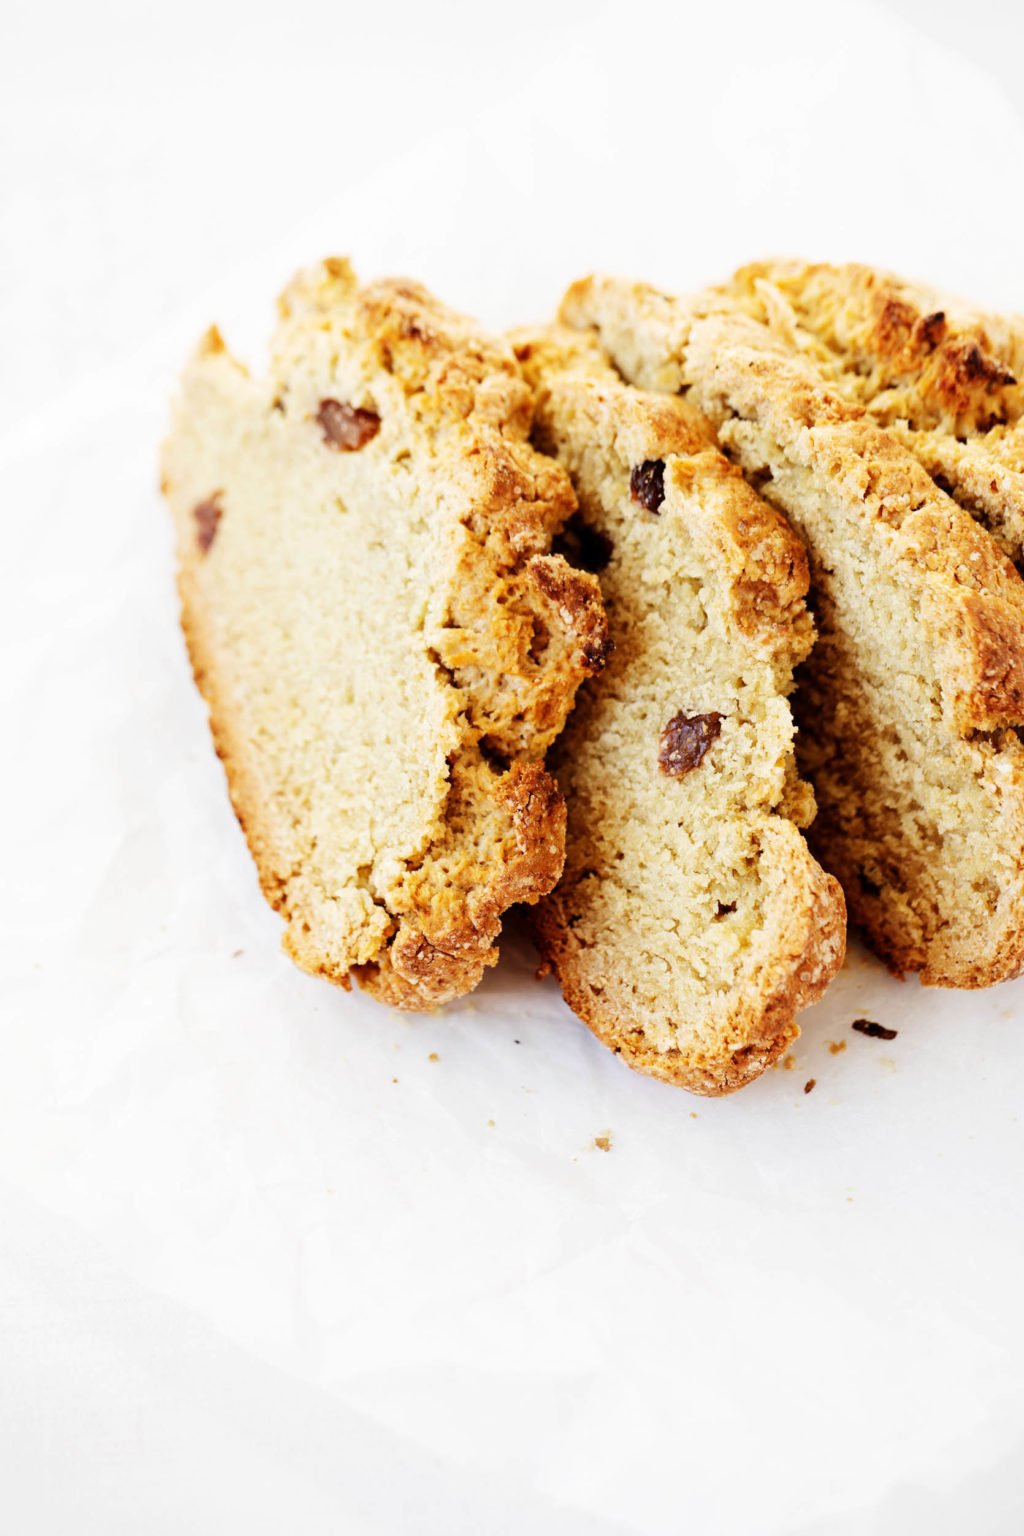 A few slices of vegan Irish soda bread, lined up on a white sheet of parchment paper.